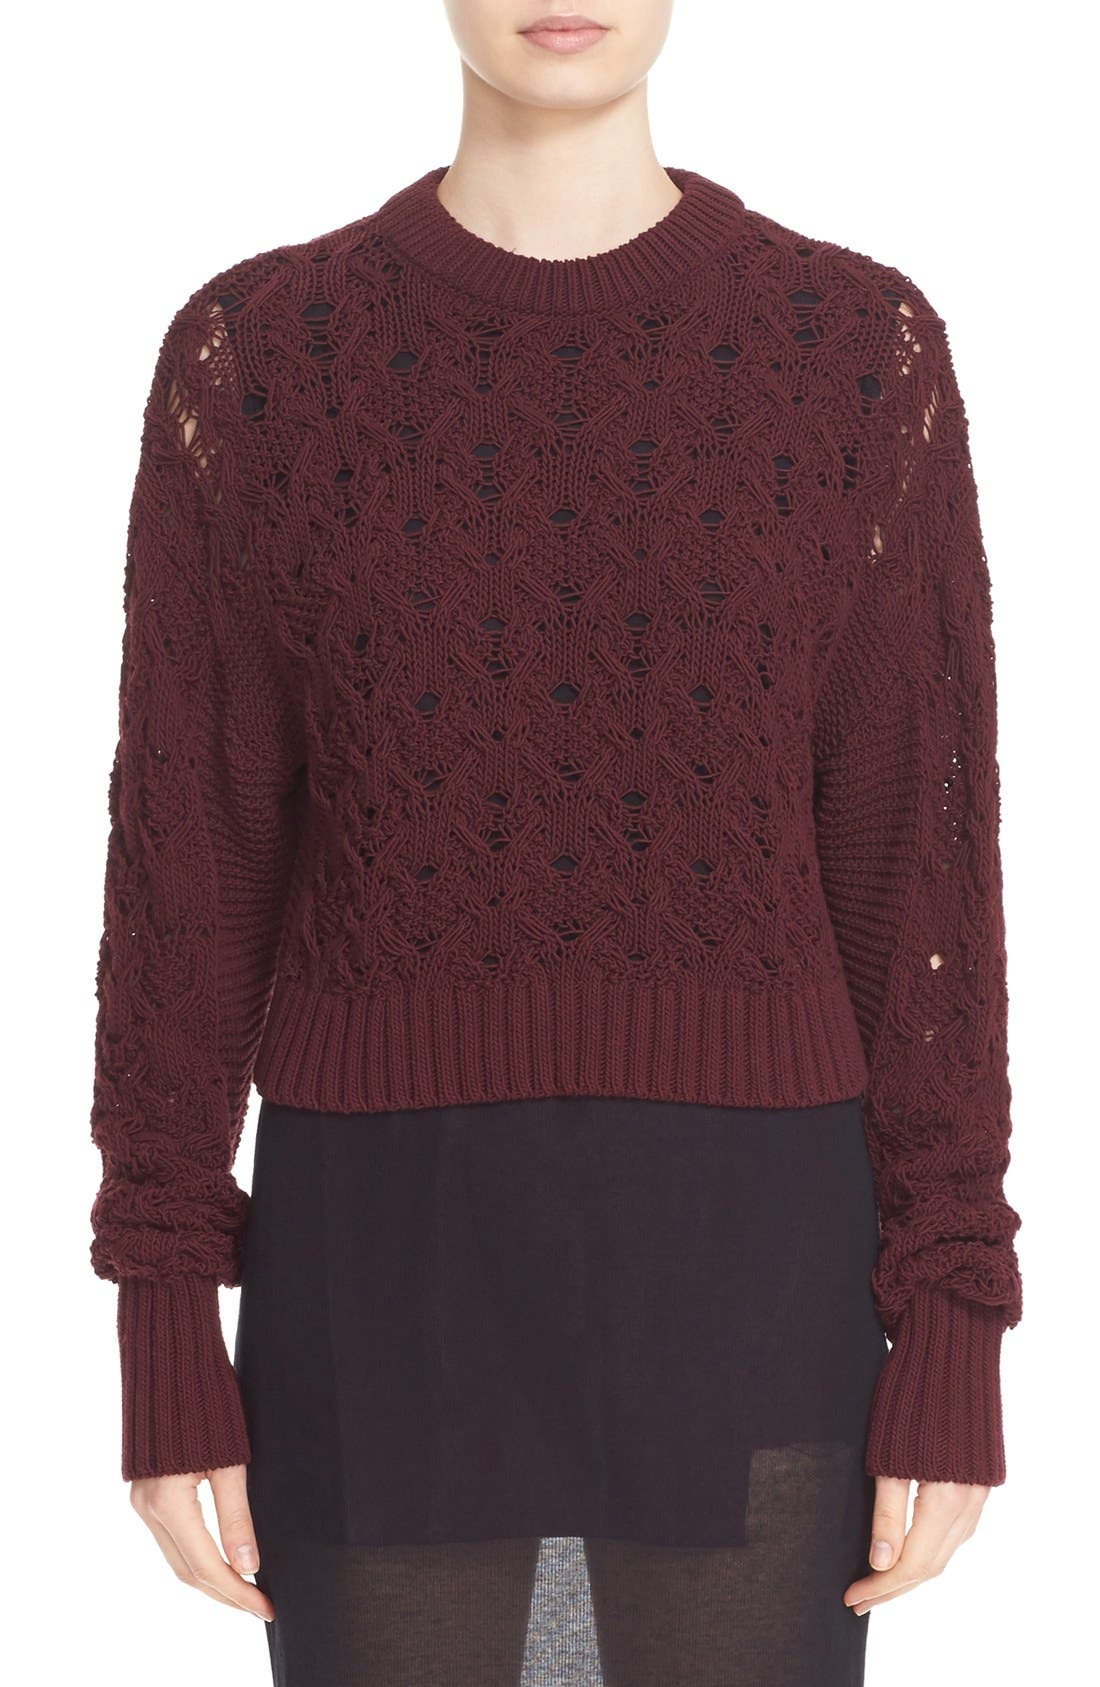 Alternate Image 1 Selected - Public School Cotton Blend Cable Knit Sweater